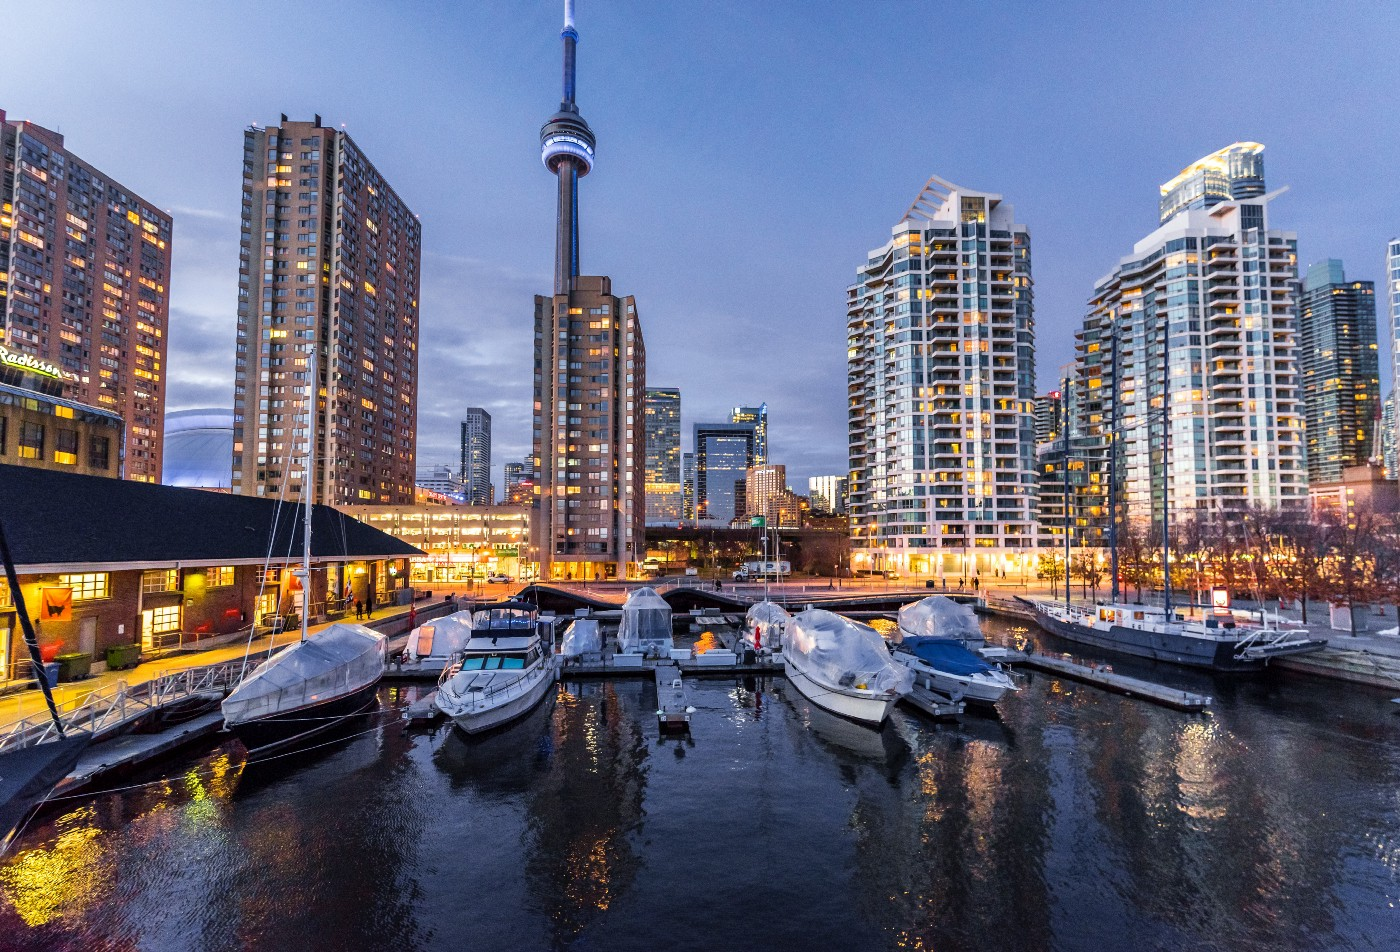 A photo of the Toronto harborfront, with lots of rich people's boats and condo towers and the CN Tower. Toronto's nice as far as cities go, but let's be honest, it's a farm for harvesting time and money from millions of humans.